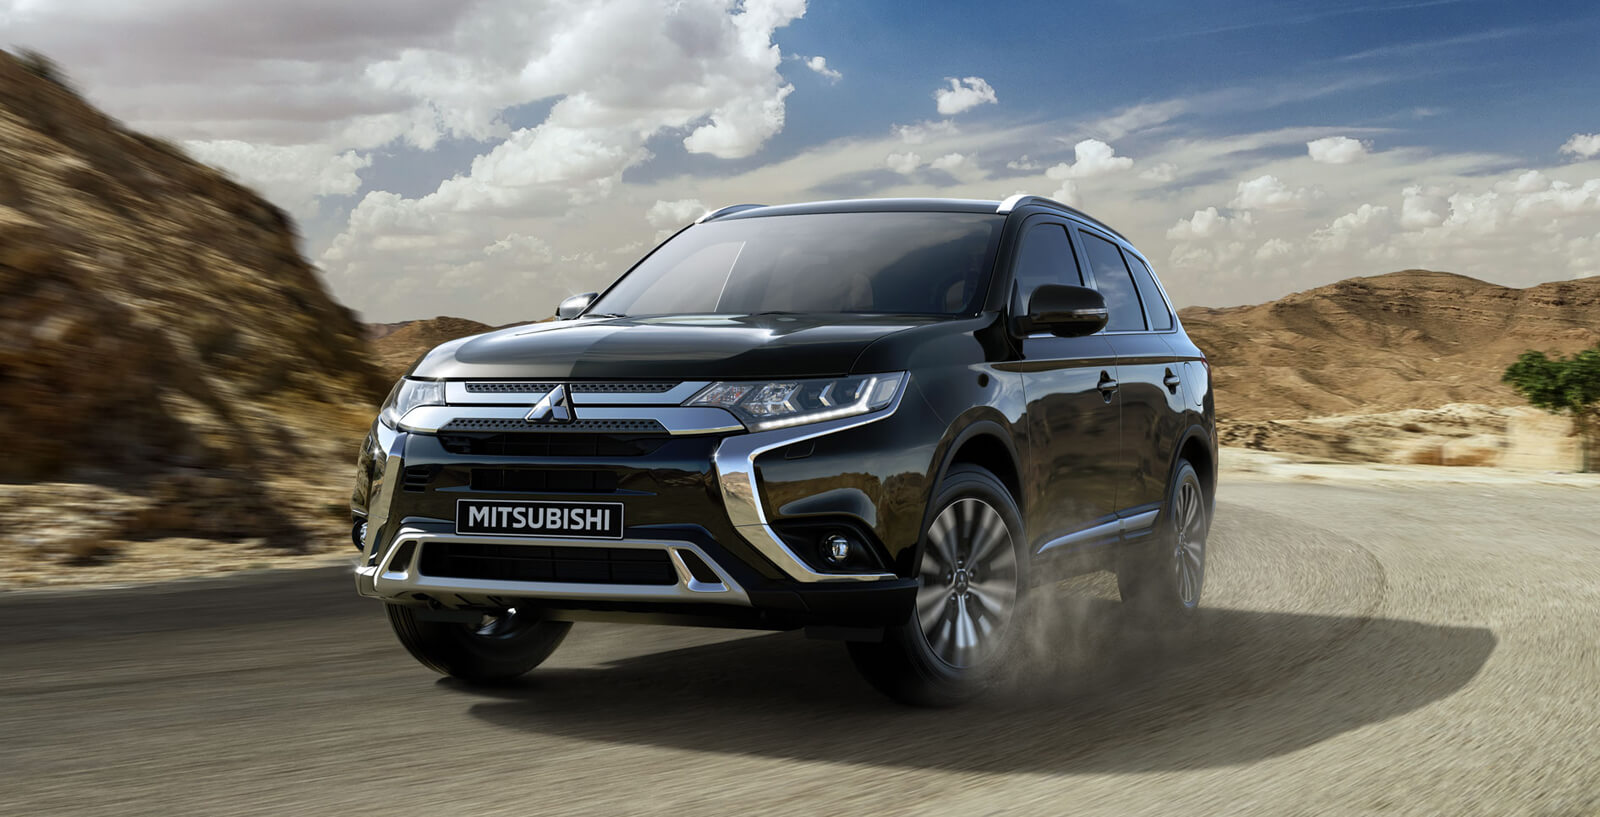 The Mitsubishi Outlander is a PHEV